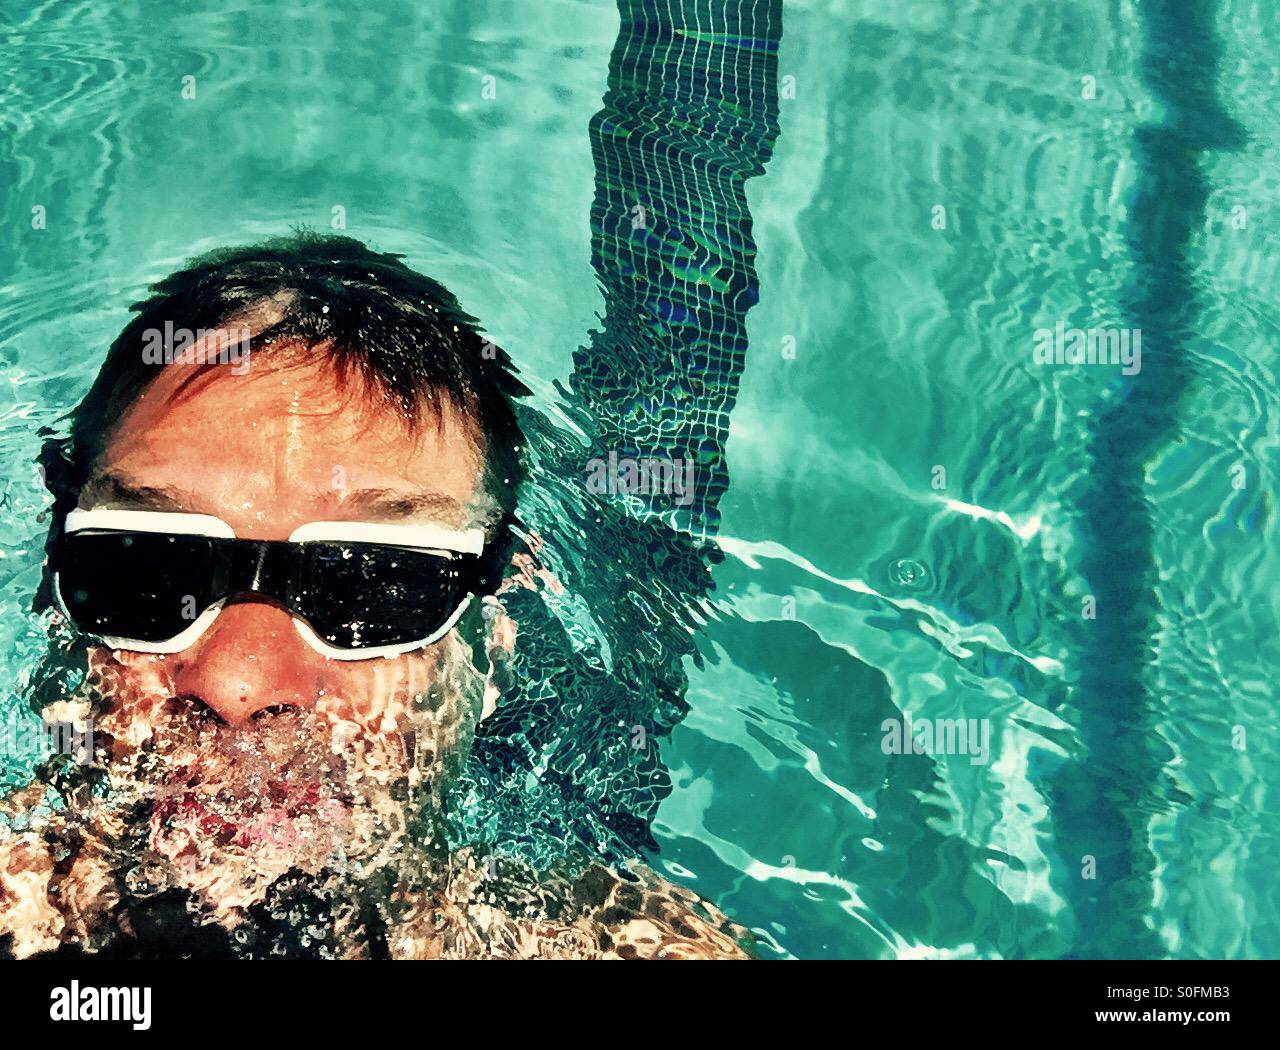 The swimmer. Top view above man swimming backstroke in an outdoor pool. - Stock Image